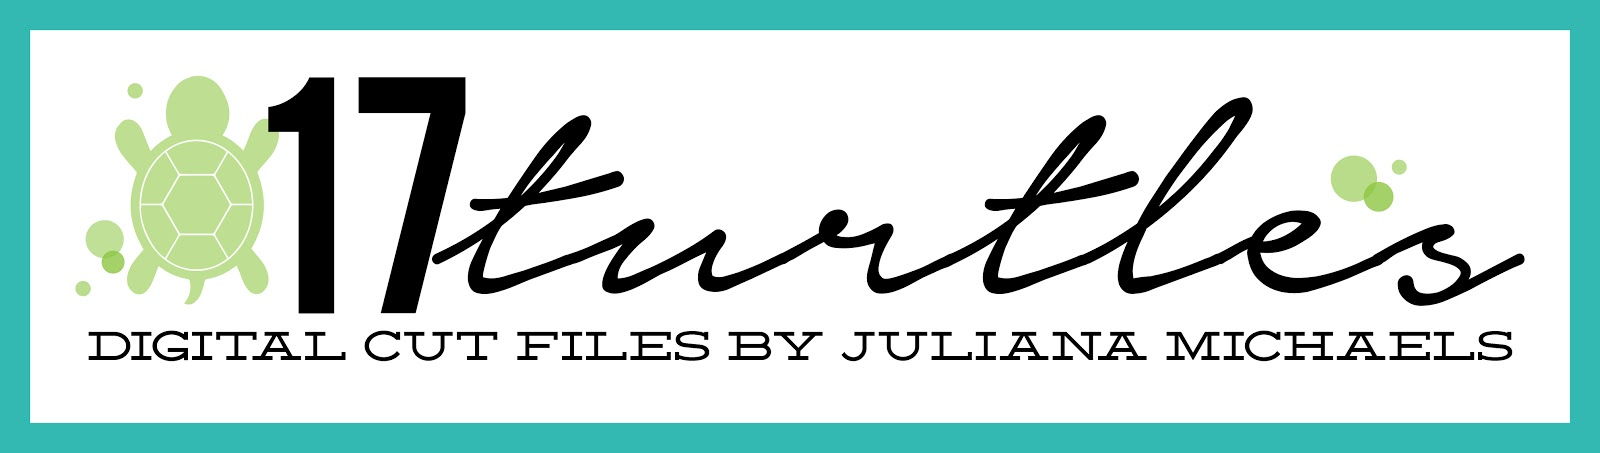 17turtles Etsy Shop - Digital Cut Files by Juliana Michaels